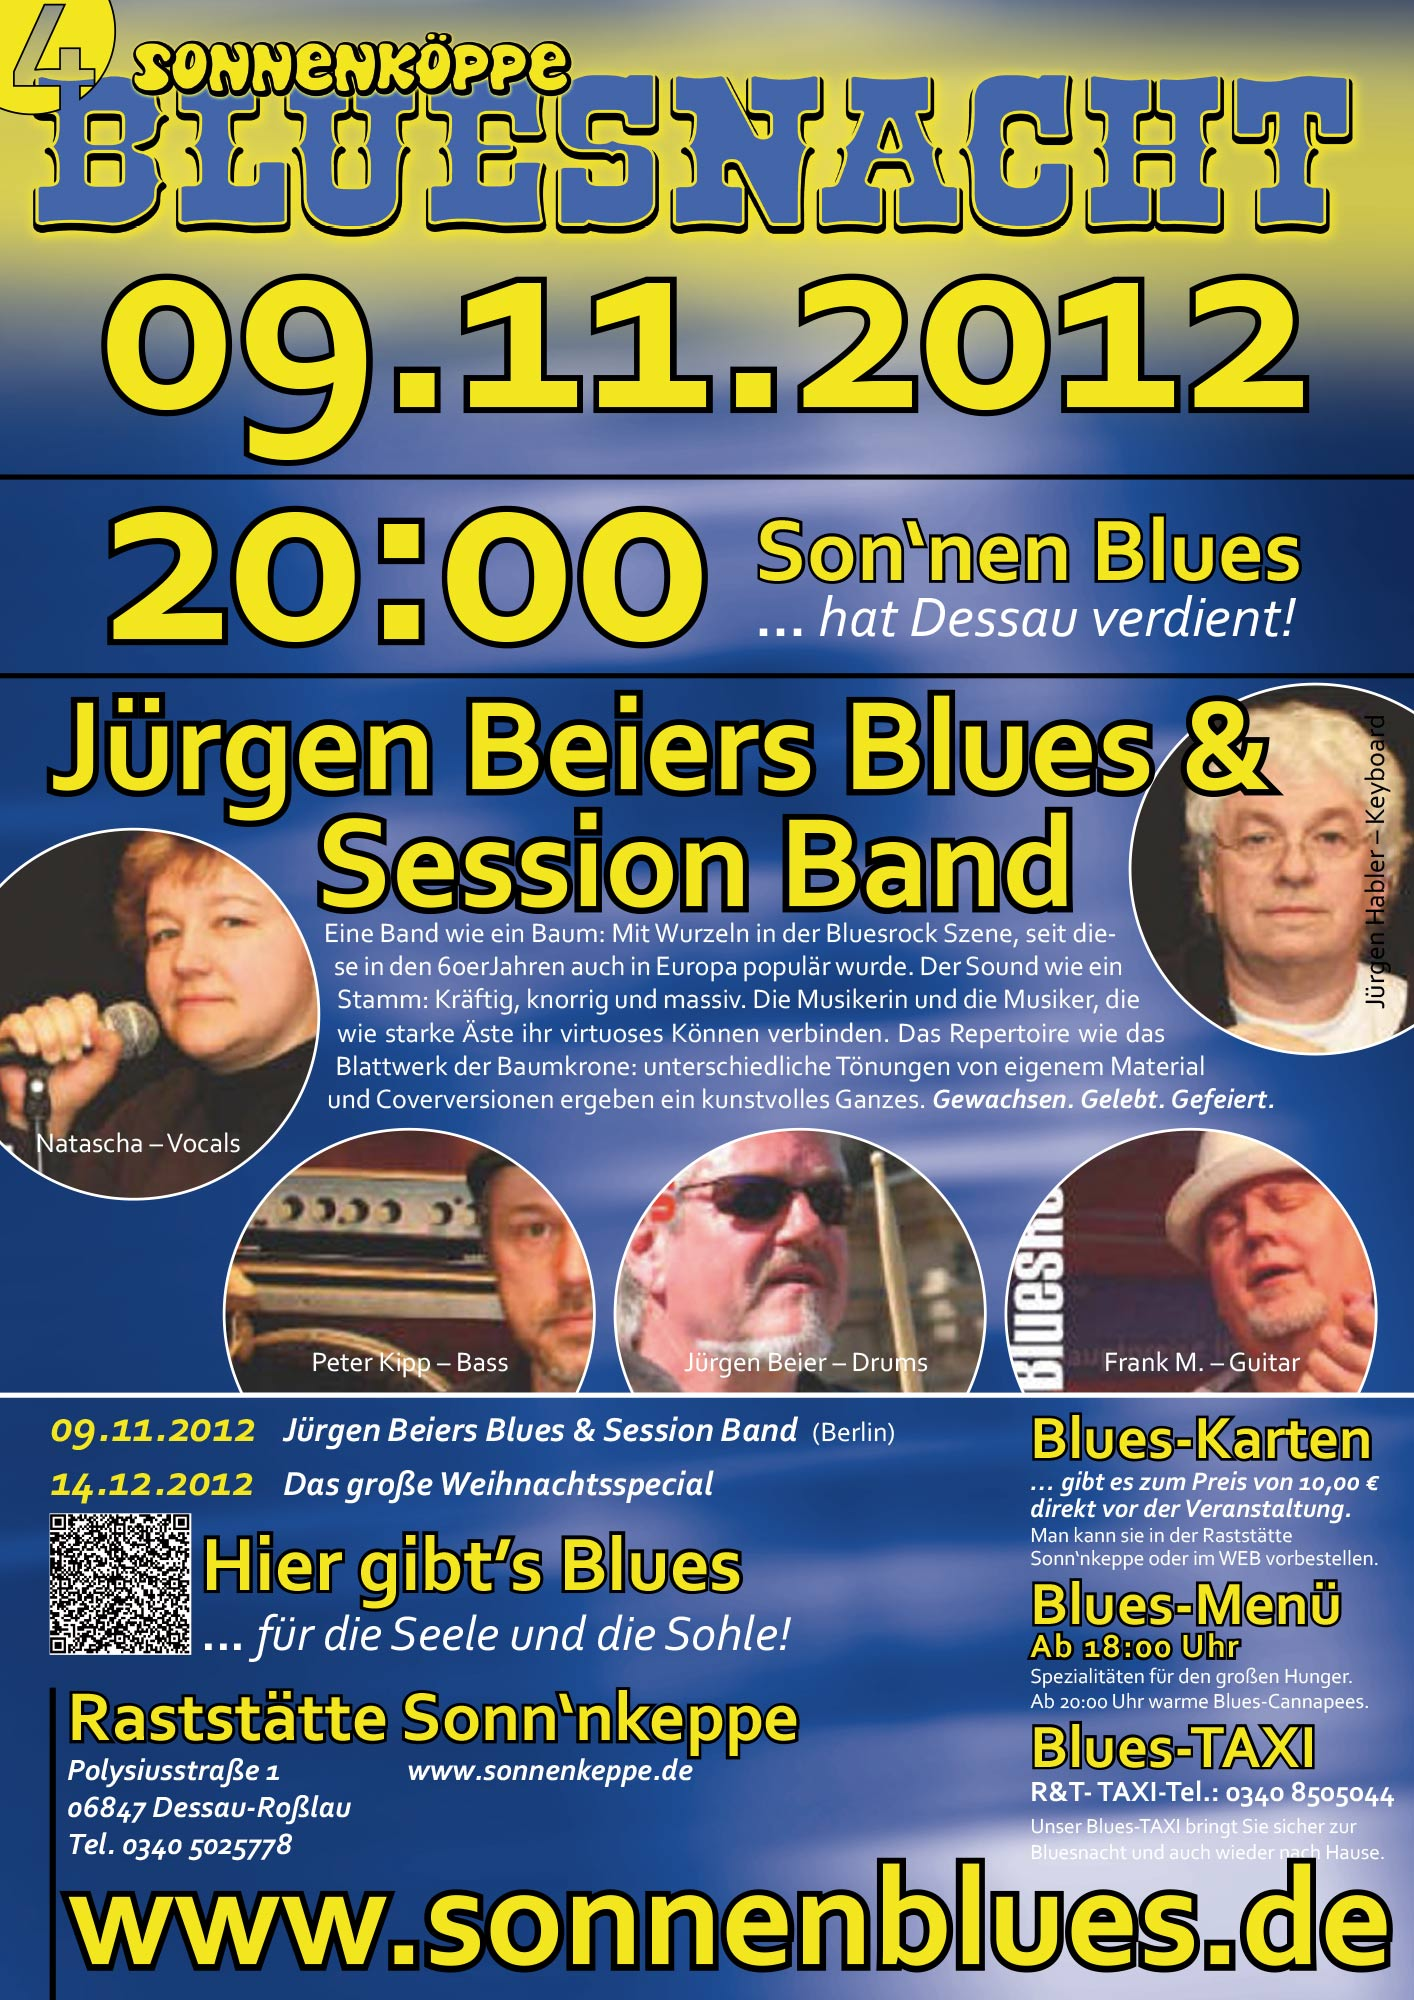 Bluesnacht #5 - Jürgen Beier Blues & Session Band